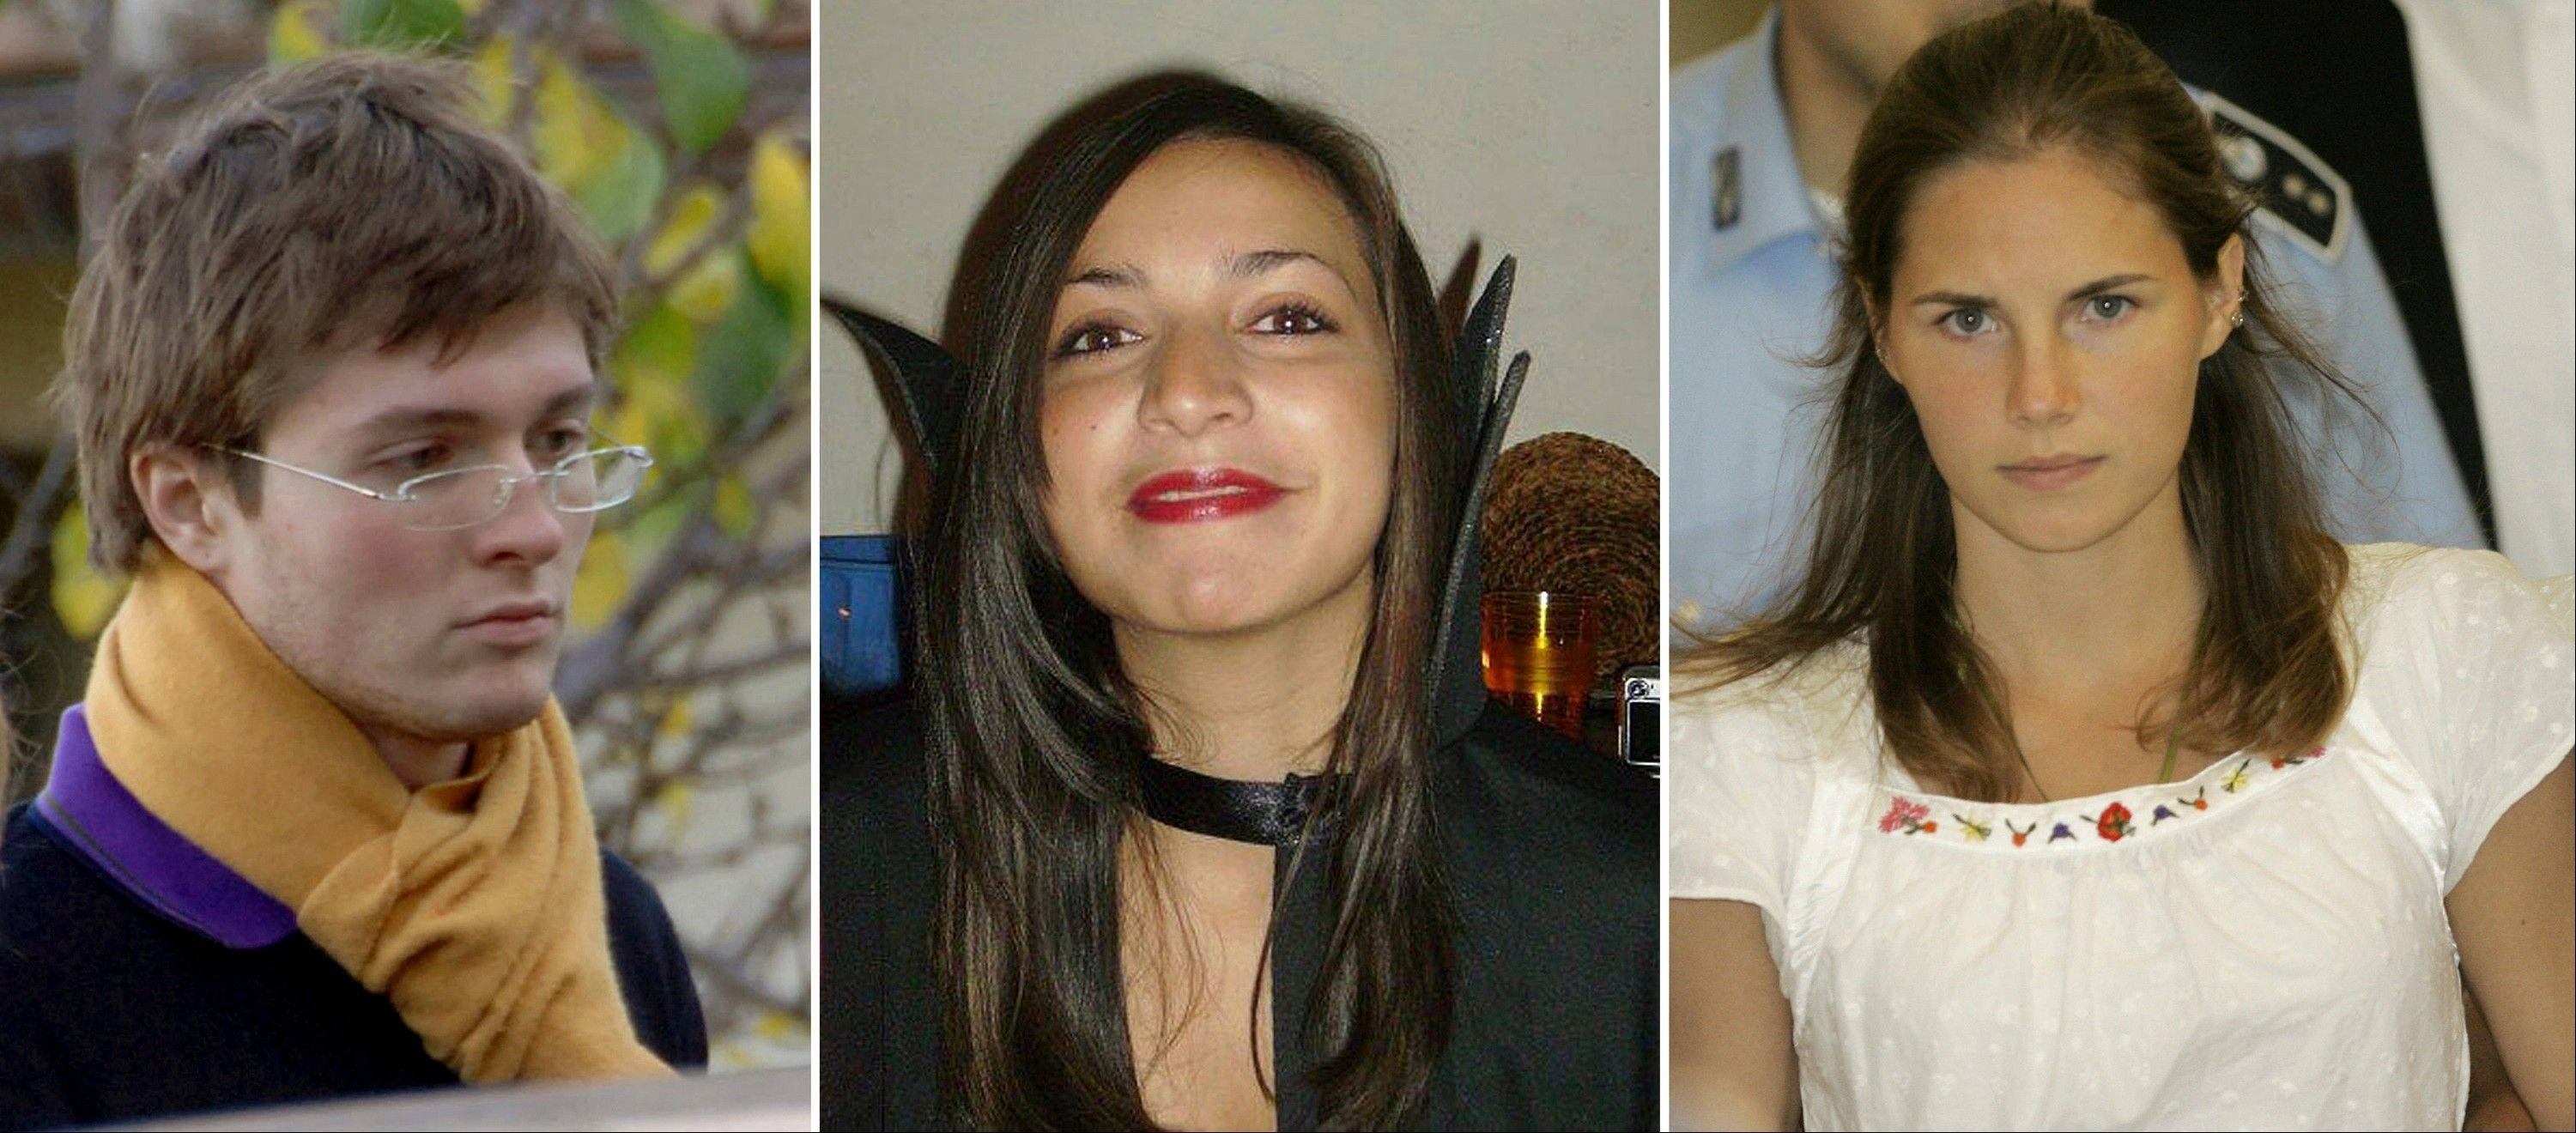 From left; Italian student Raffaele Sollecito, slain 21-year-old British woman Meredith Kercher, her American roommate Amanda Knox. Few international criminal cases have cleaved along national biases as that of American student Amanda Knox, who was awaiting half world away her third Italian court verdict in the 2007 slaying of her British roommate, 21-year-old Meredith Kercher.